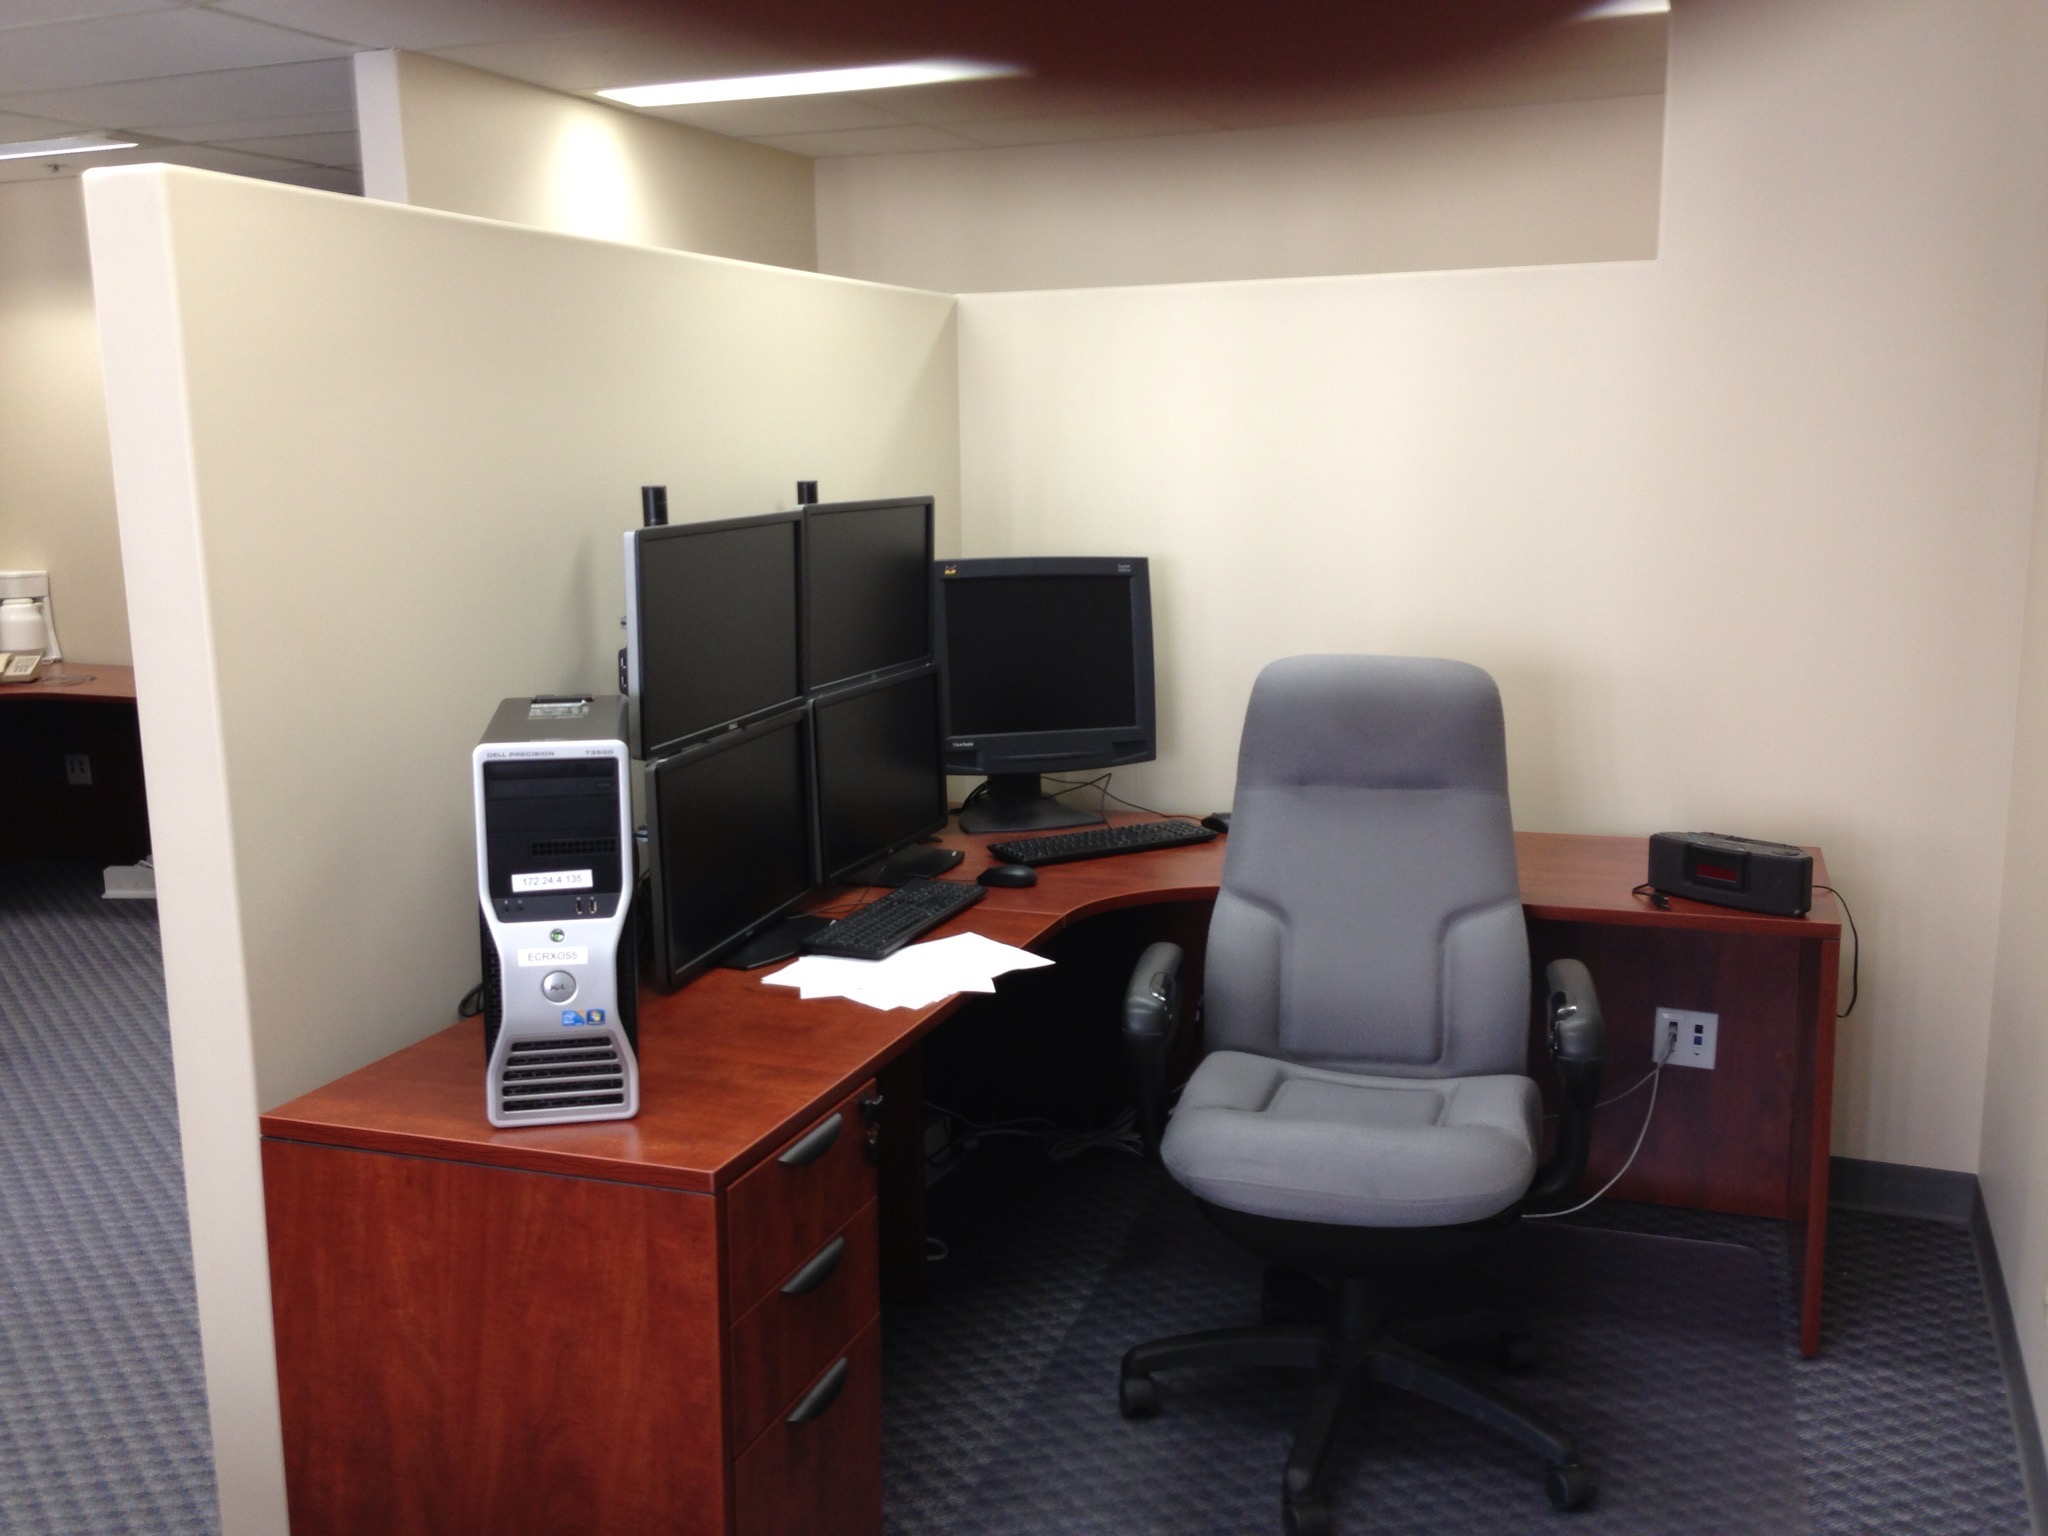 OR06  Office Renovations That Work - General Contractors Commercial Renovations  in Edmonton, Office  and  Warehouse Project Contractors